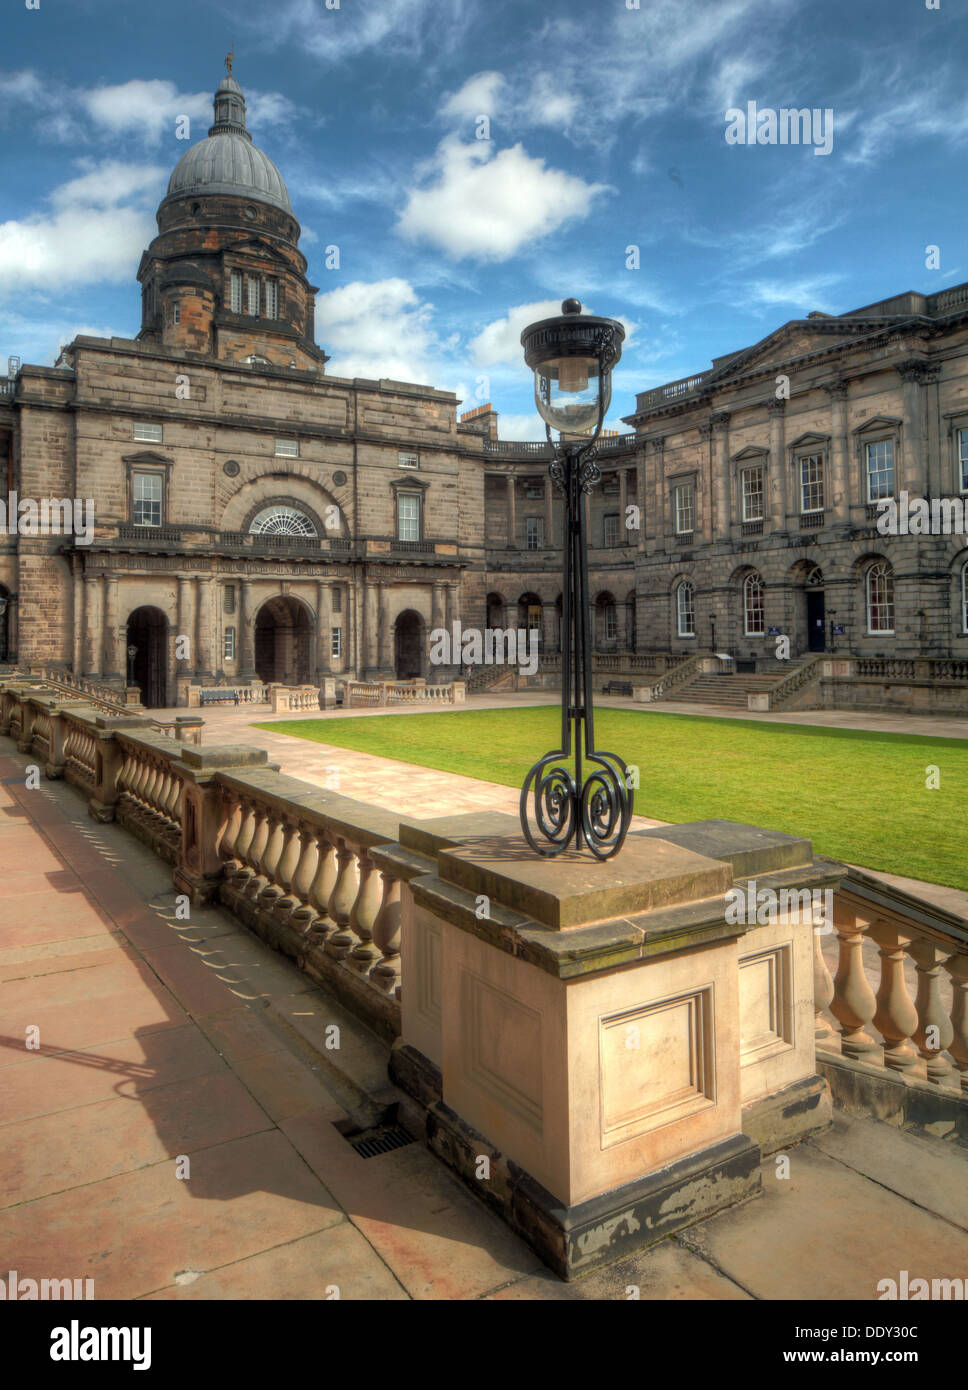 Scotland,UK,Scottish,uni,school,of,learning,building,architecture,Victorian,old,town,capital,city,cities,world,heritage,site,grade,II,grade2,listed,public,research,summer,2013,grass,Old,College,South,Bridge,Edinburgh,Midlothian,EH8,9YL,EH89YL,wide,view,shot,lens,tourist,tourism,attraction,dome,lamp,gotonysmith,oldtown,Edinburg,icon,iconic,Scots,Scotish,Scottish,Scotland,problem,with,Uni,stone,history,historic,tourist,tourism,tour,travel,study,student,Buy Pictures of,Buy Images Of,problem with,Edinburgh University,Edinburgh Uni